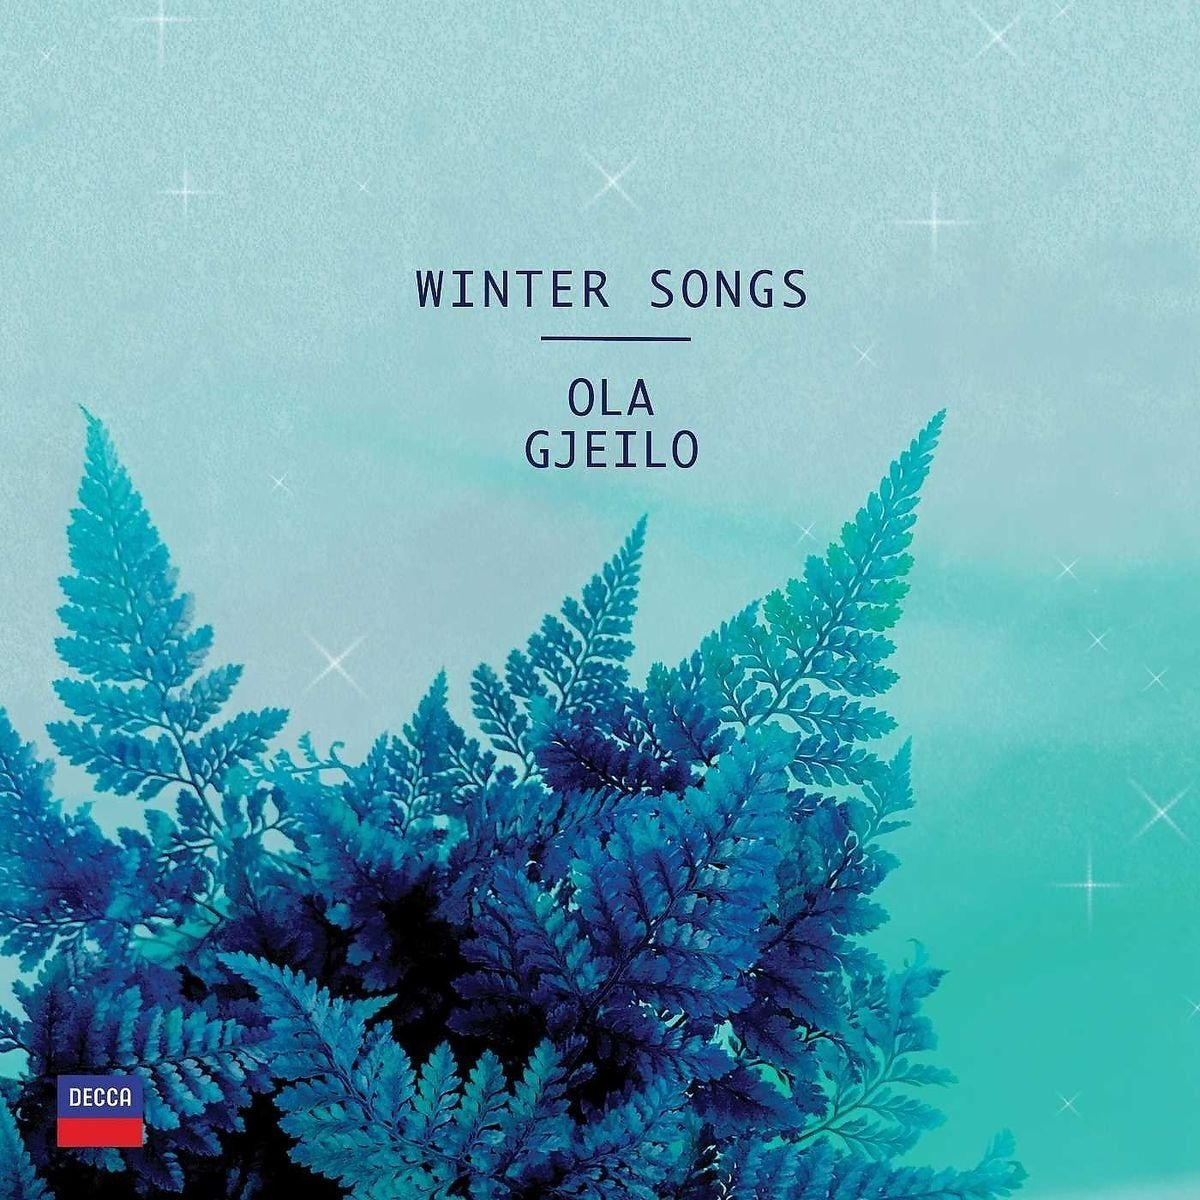 Ola Gjeilo: Winter Songs  Decca